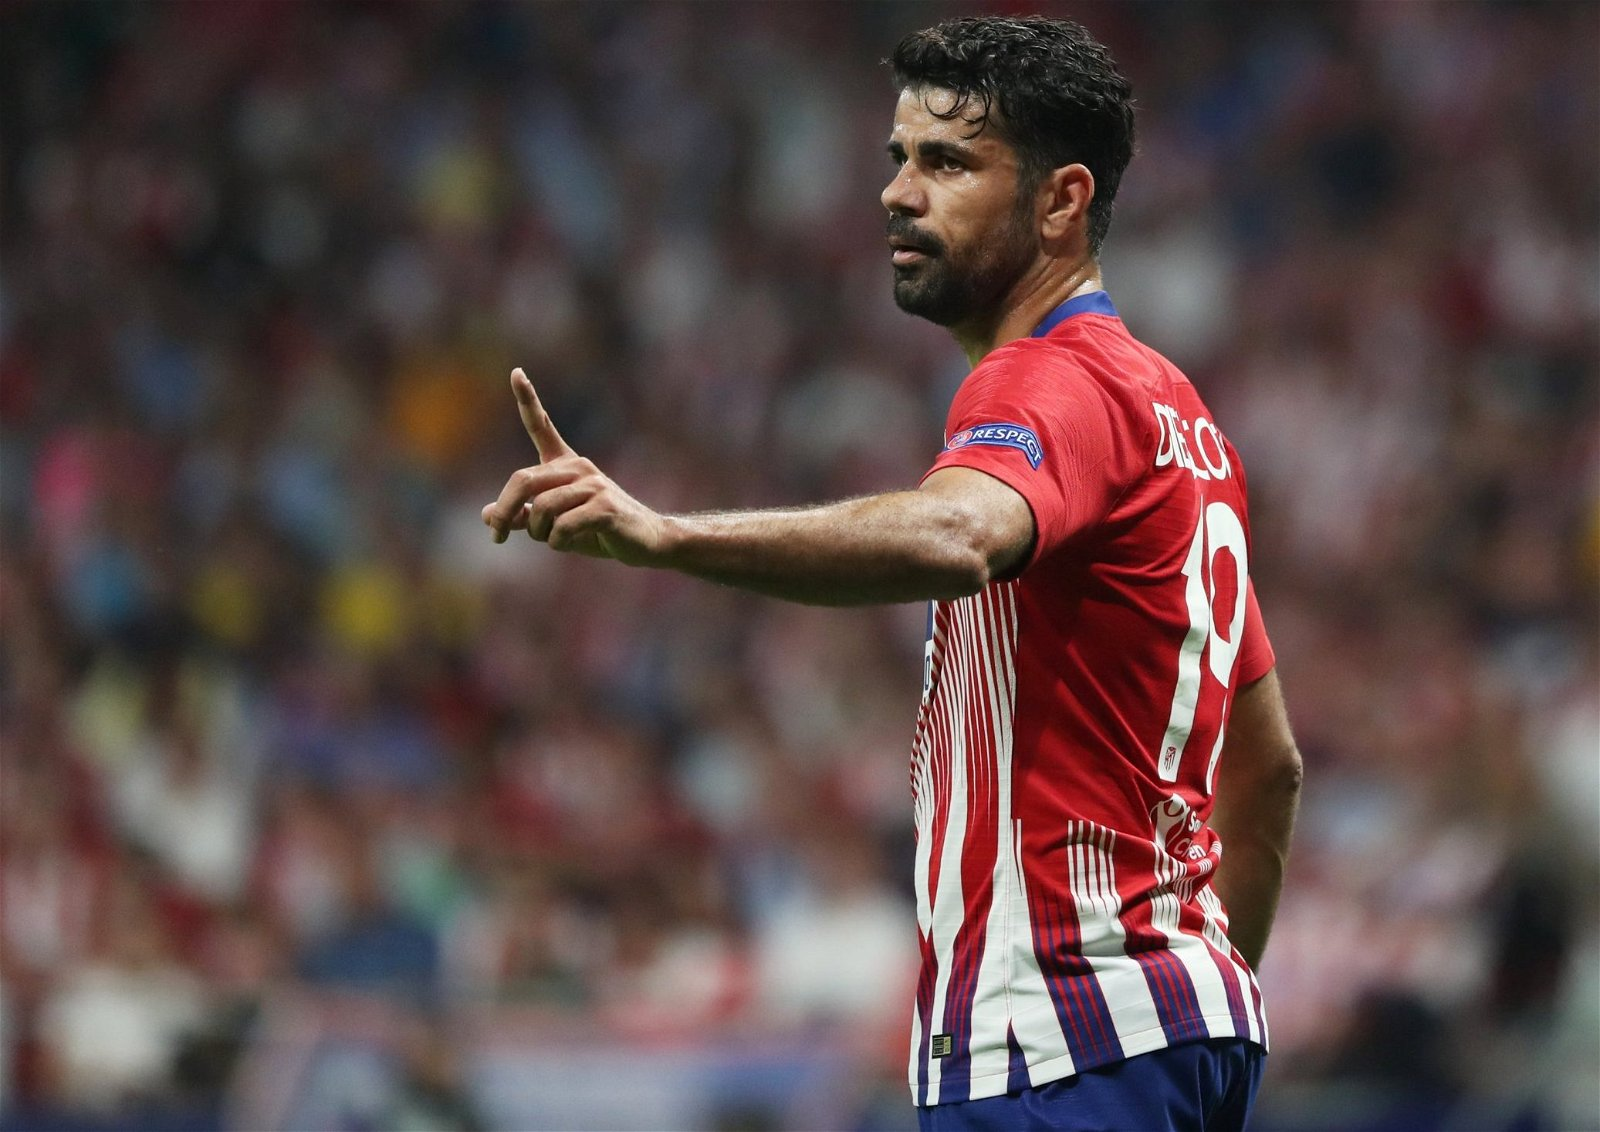 Diego Costa in action for Atletico Madrid against Club Brugge in the Champions League